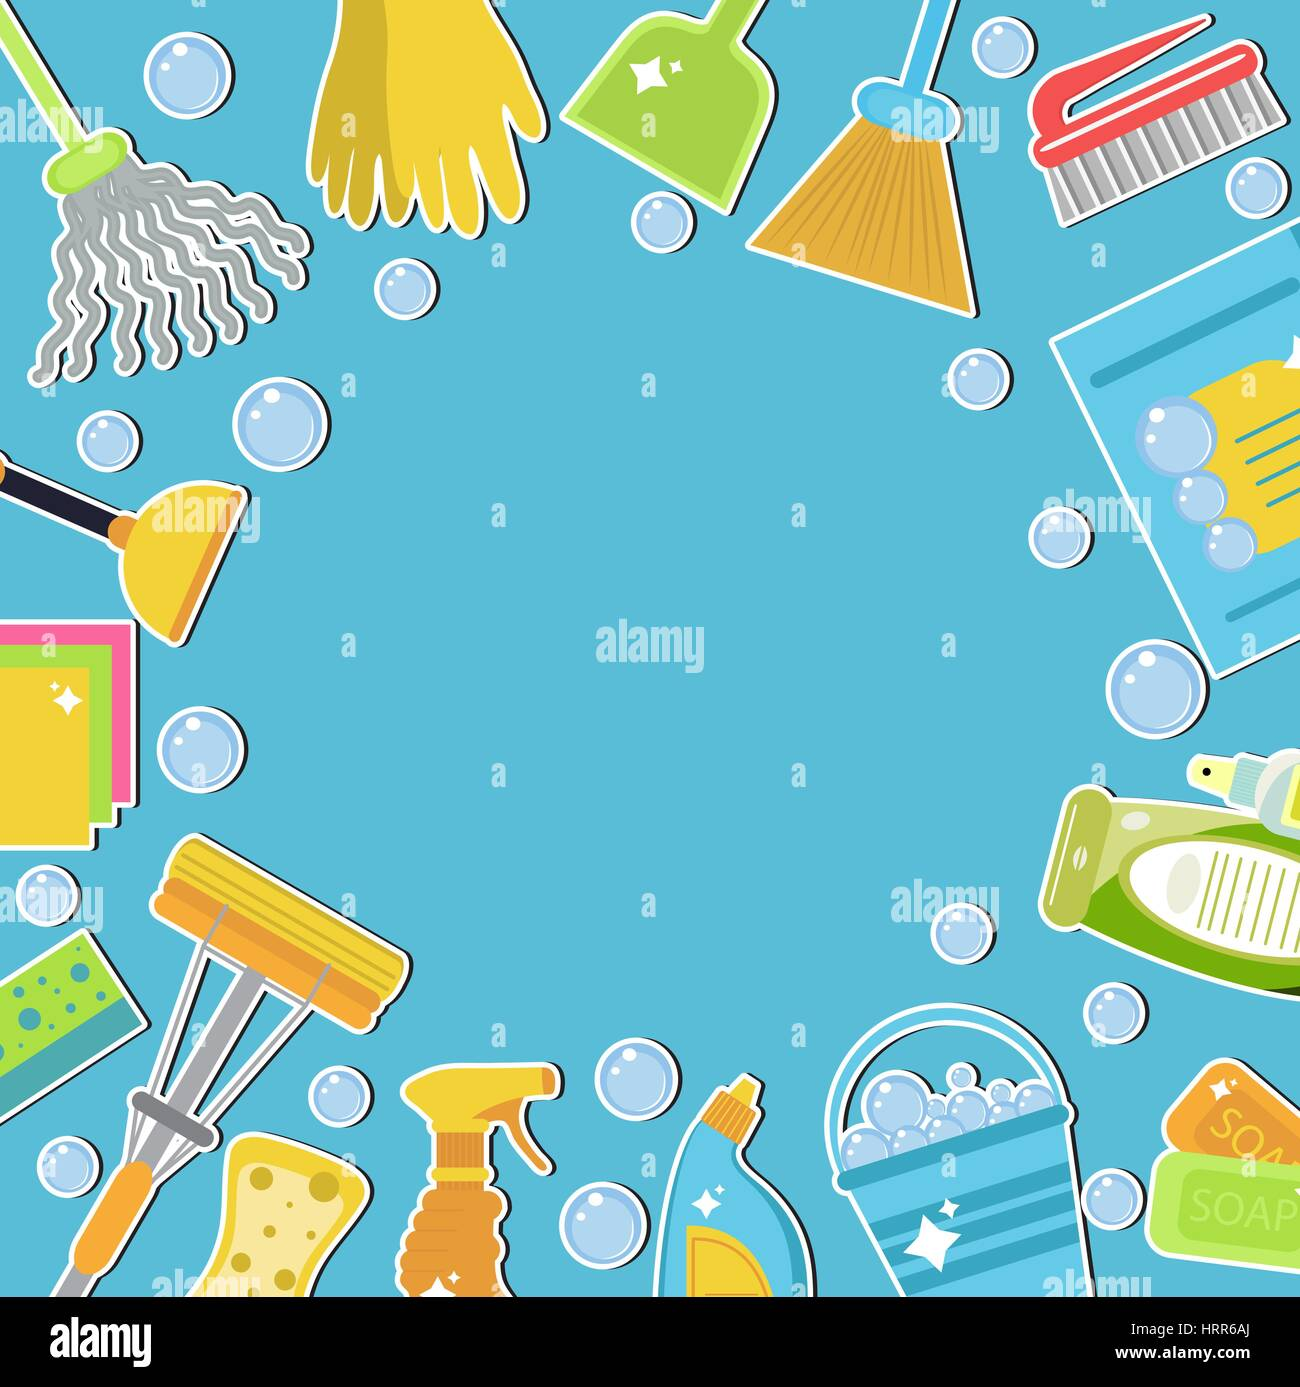 Set of icons for cleaning tools. Cleaning template for text, background. Flat design style. Cleaning design elements. - Stock Vector